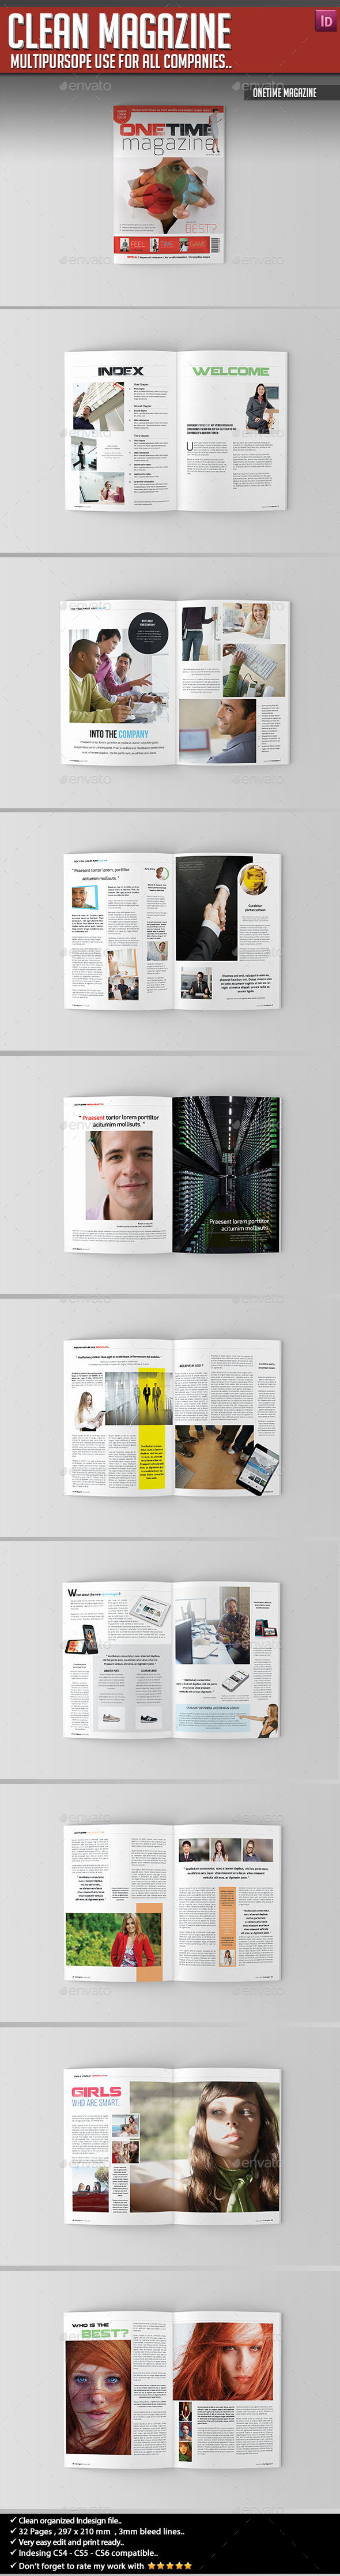 OneTime Magazine - Clean Magazine Template - Magazines Print Templates